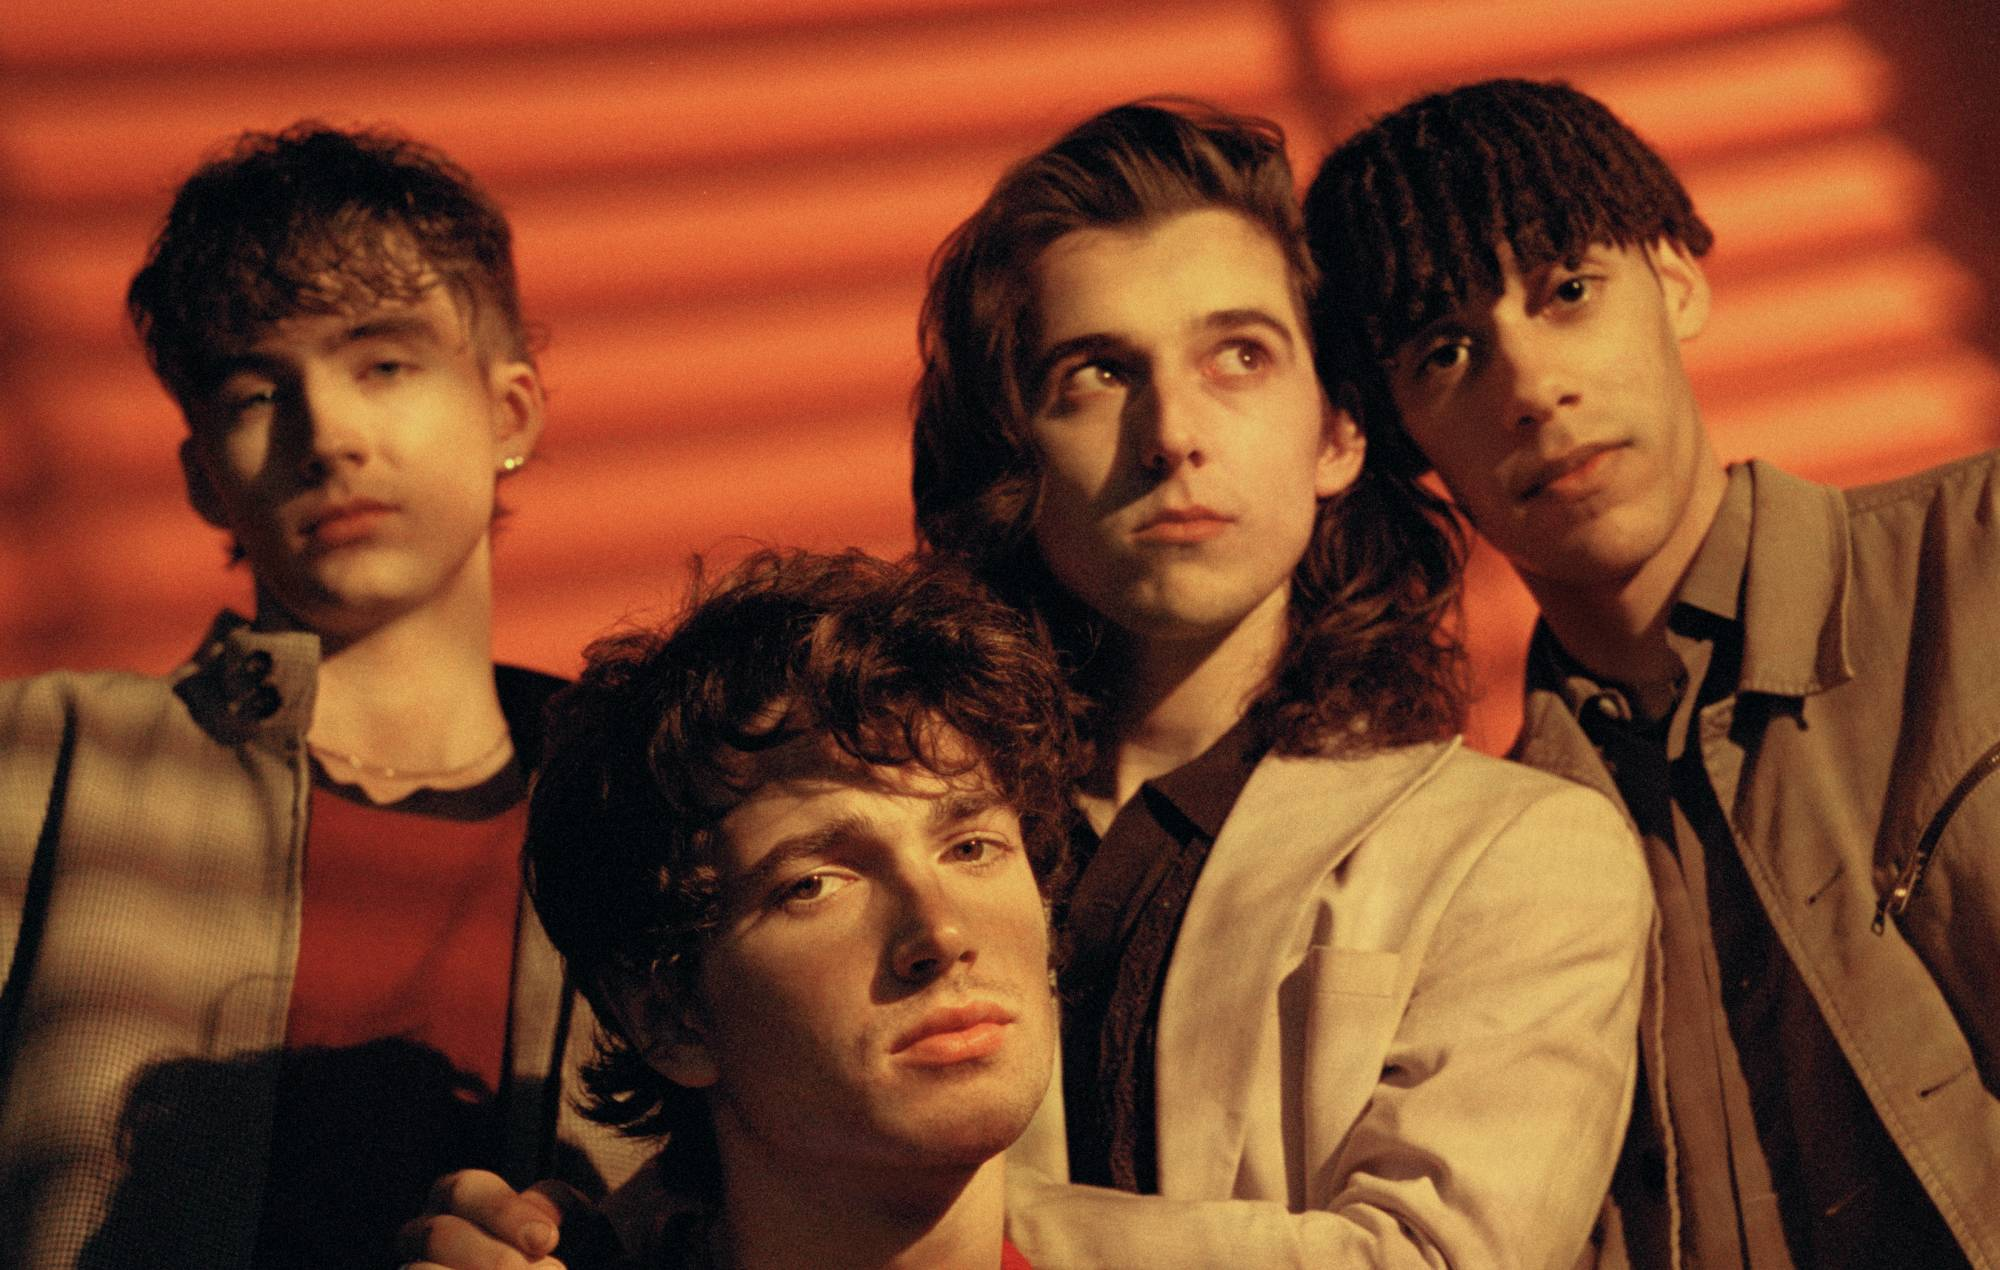 Inhaler talk debut album 'It Won't Always Be Like This' and new single 'Cheer Up Baby' 2